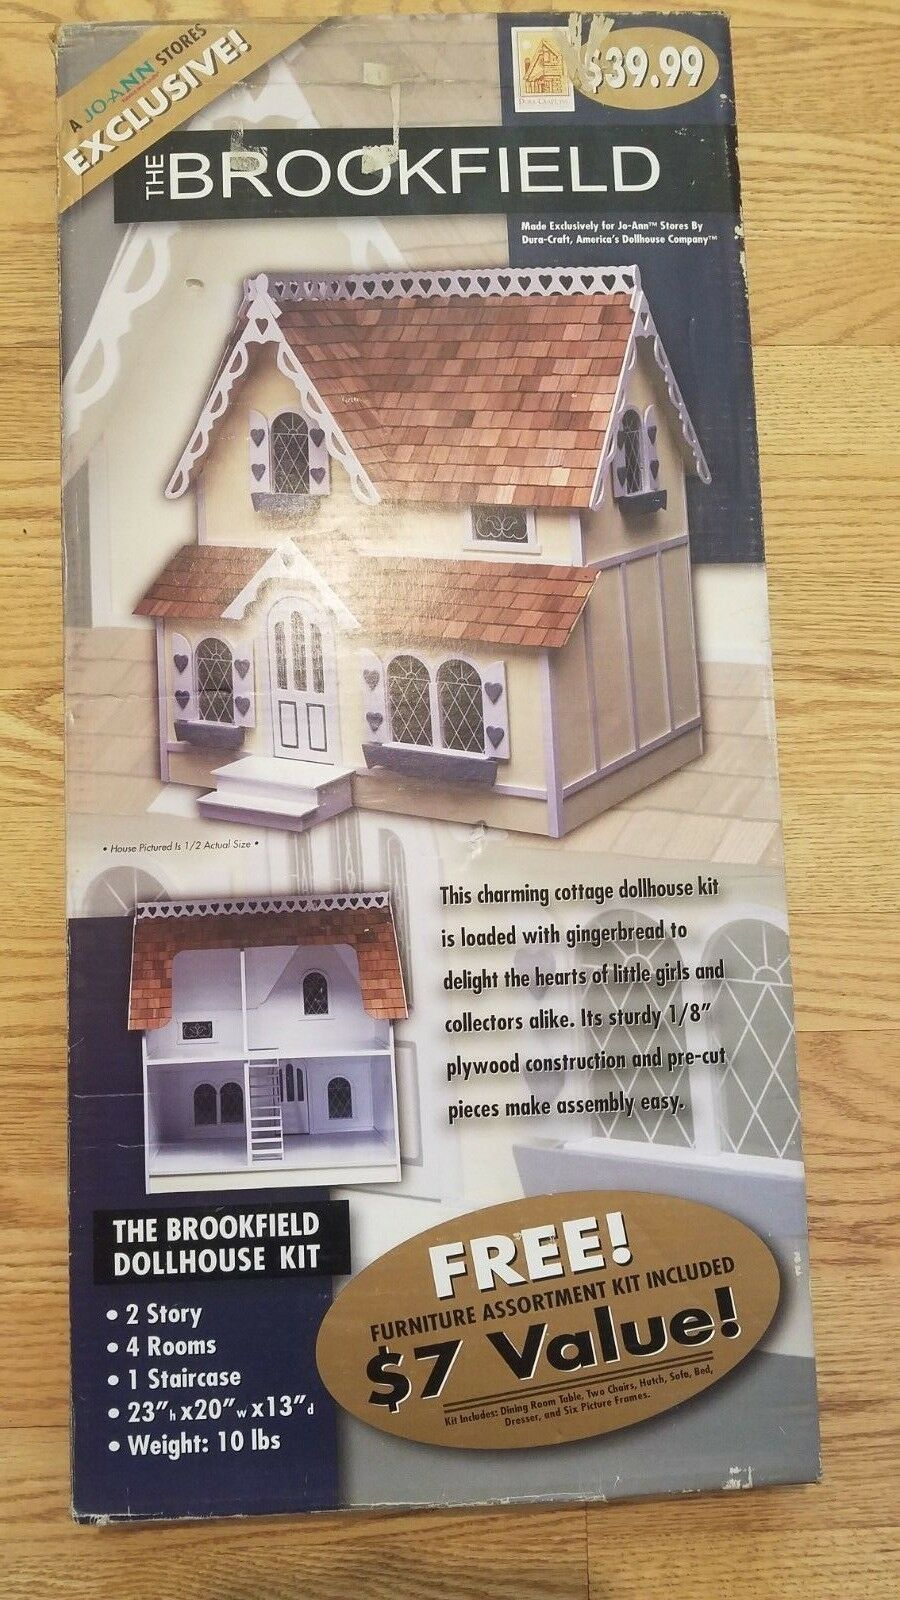 NEW OPEN BOX Vintage Dura-Craft Dollhouse  The Brookfield  Dollhouse Kit